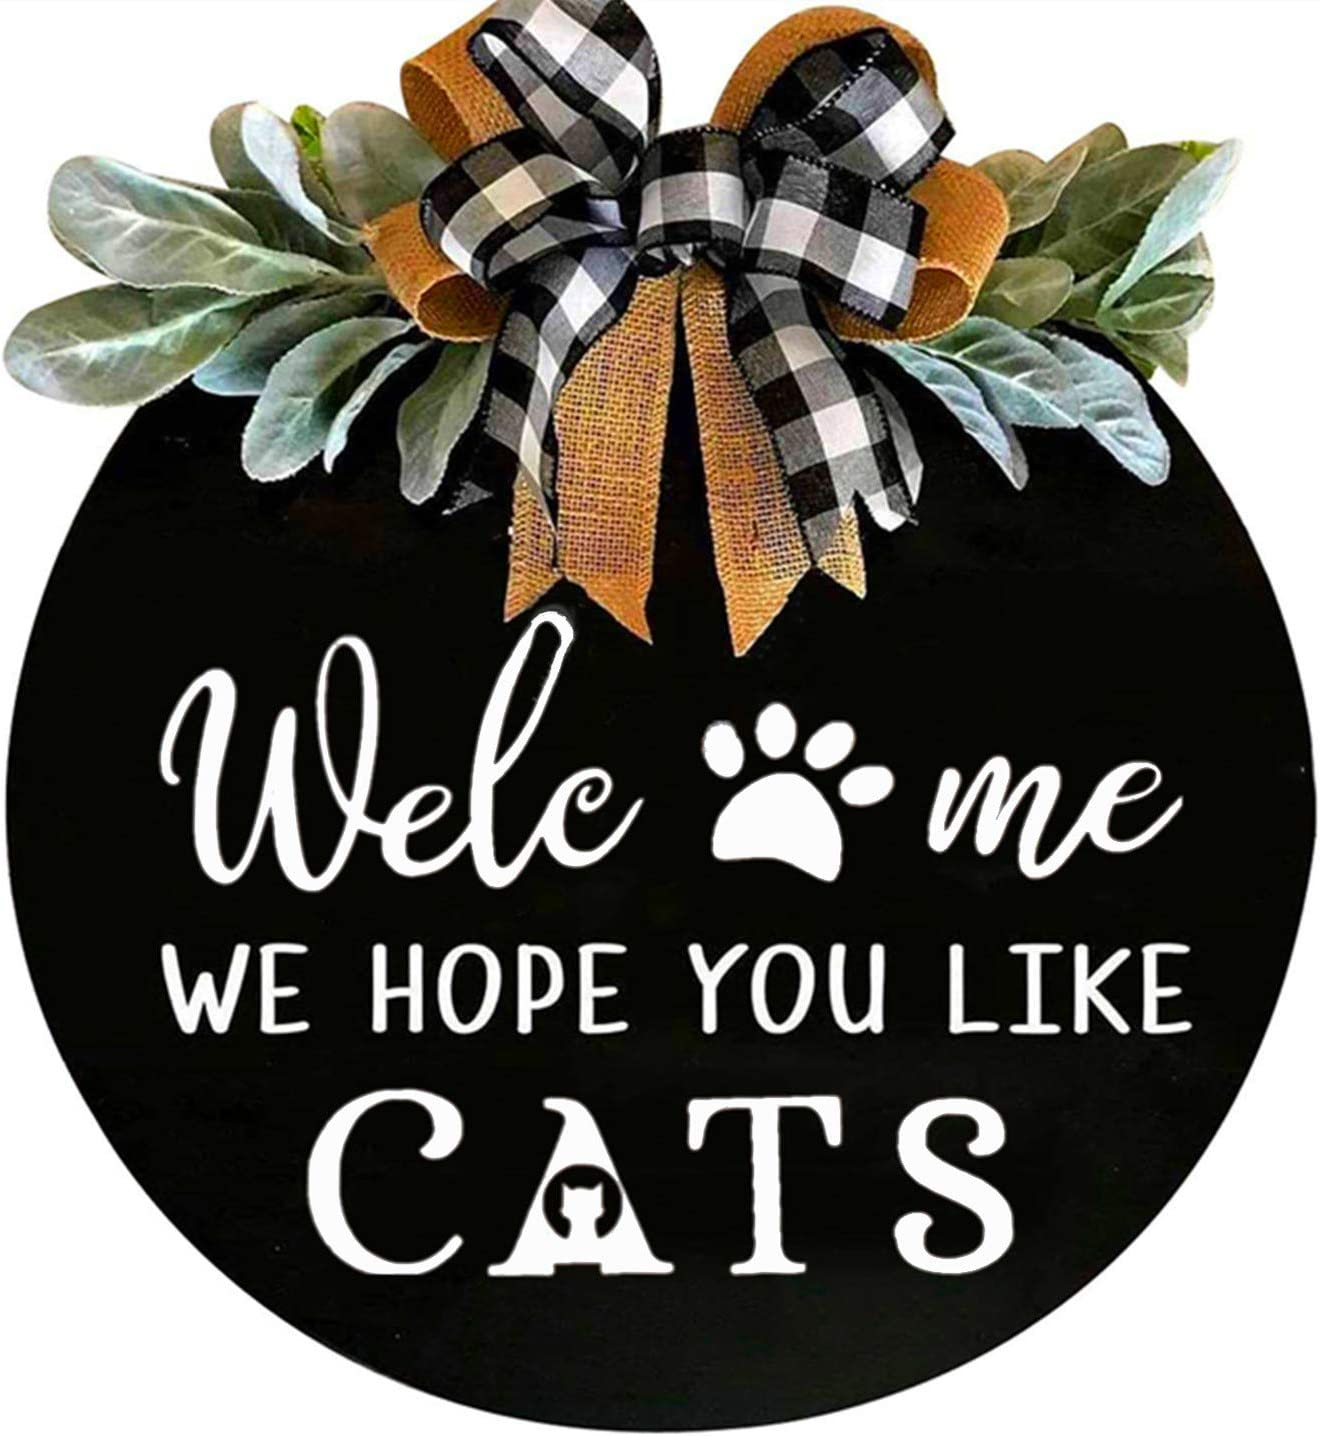 Welcome Wreath Sign for Farmhouse Front Porch Decor - We Hope You Like Cats - Door Hanging with Premium Greenery - Gift for Christmas Housewarming Holiday Home Decoration (Black)